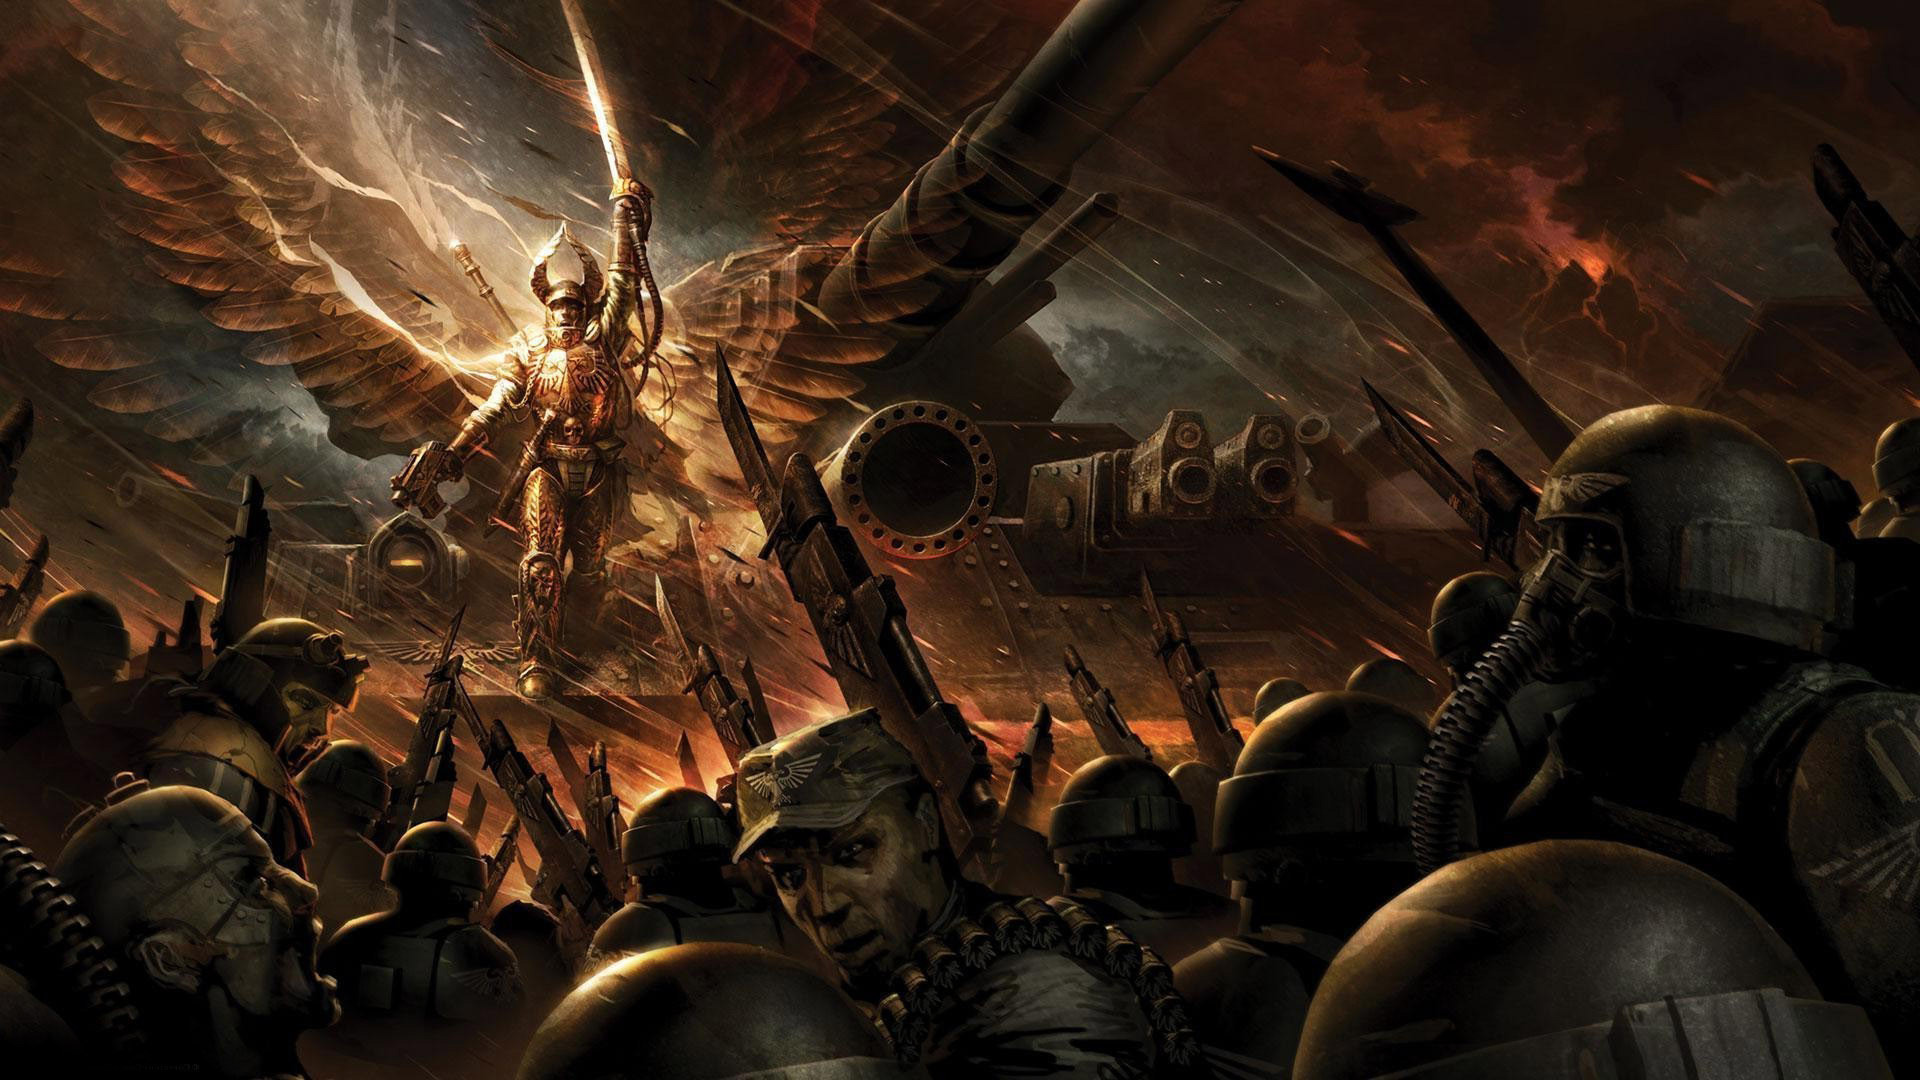 1920x1080 Imperial Guard - Warhammer 40,000 wallpaper - 1024098